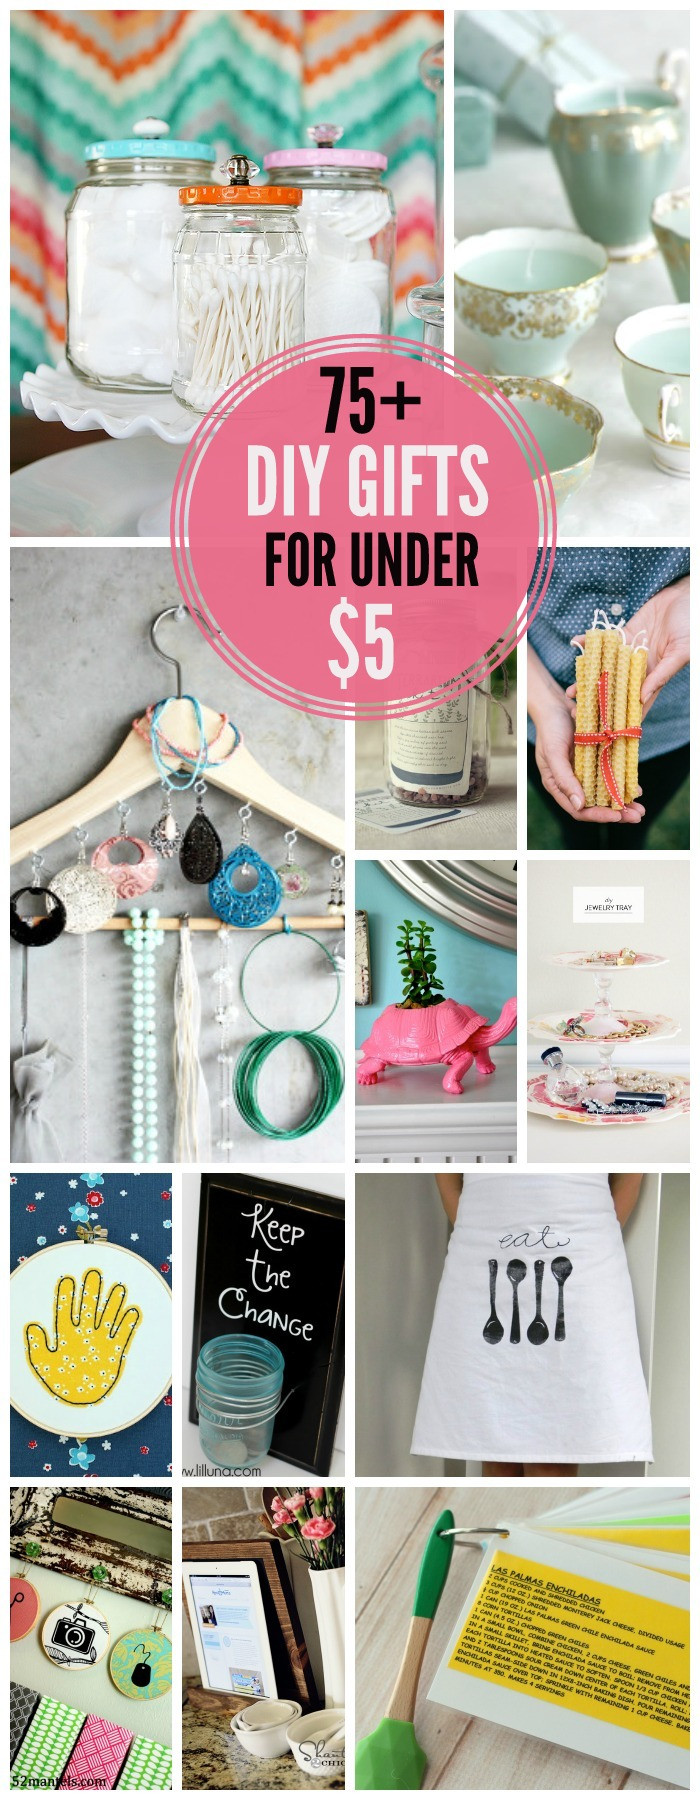 Best ideas about Cheap Birthday Ideas . Save or Pin Inexpensive Birthday Gift Ideas Now.